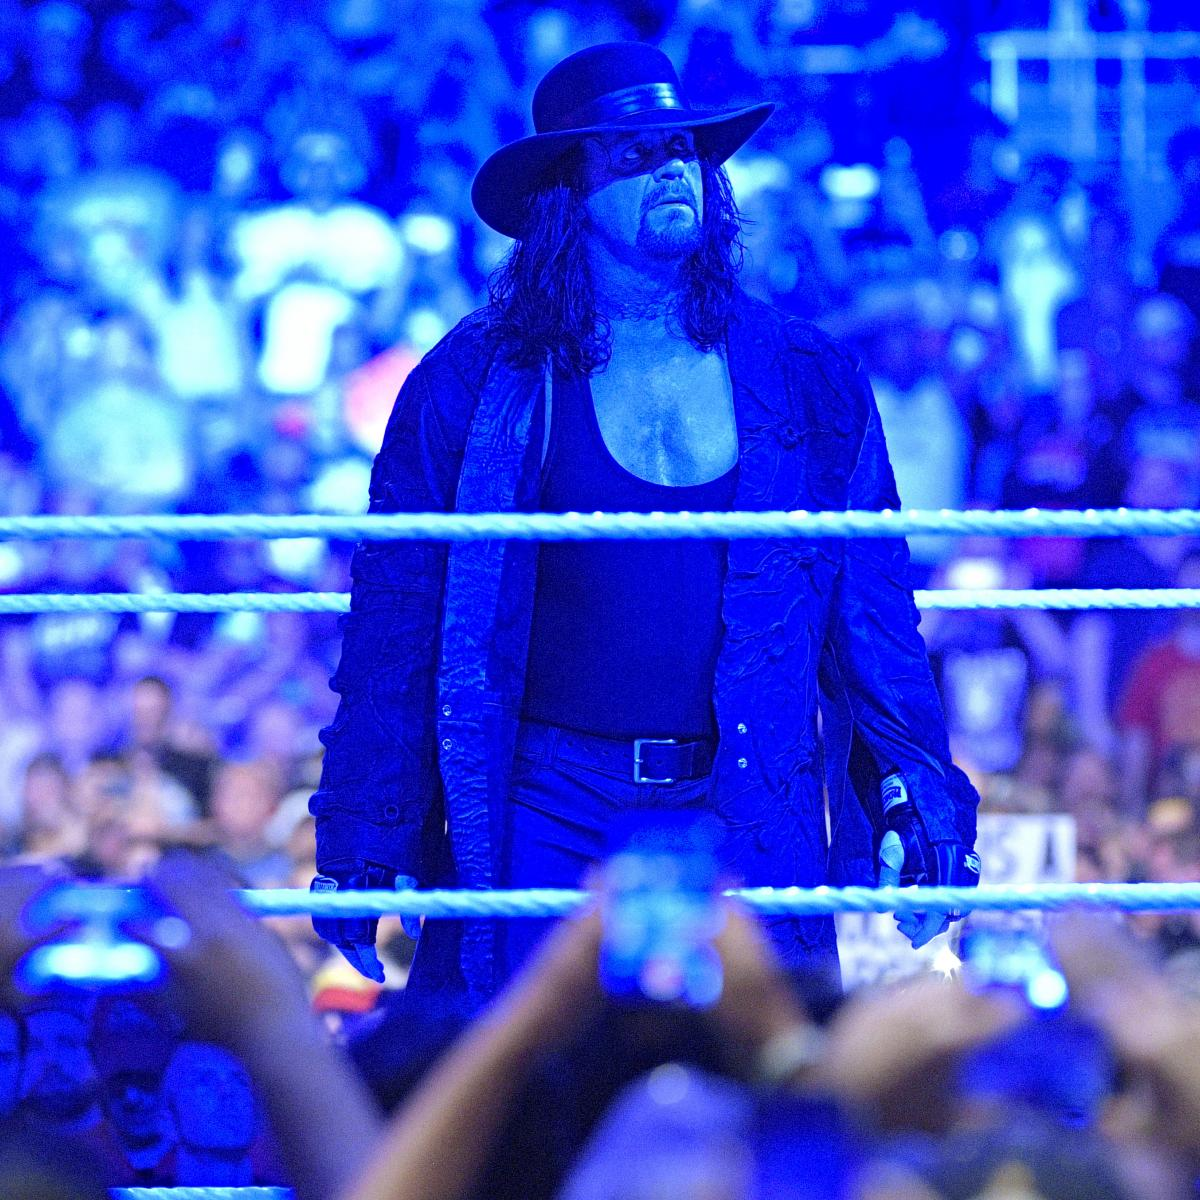 Ranking the Greatest Moments of Undertaker's WWE Career